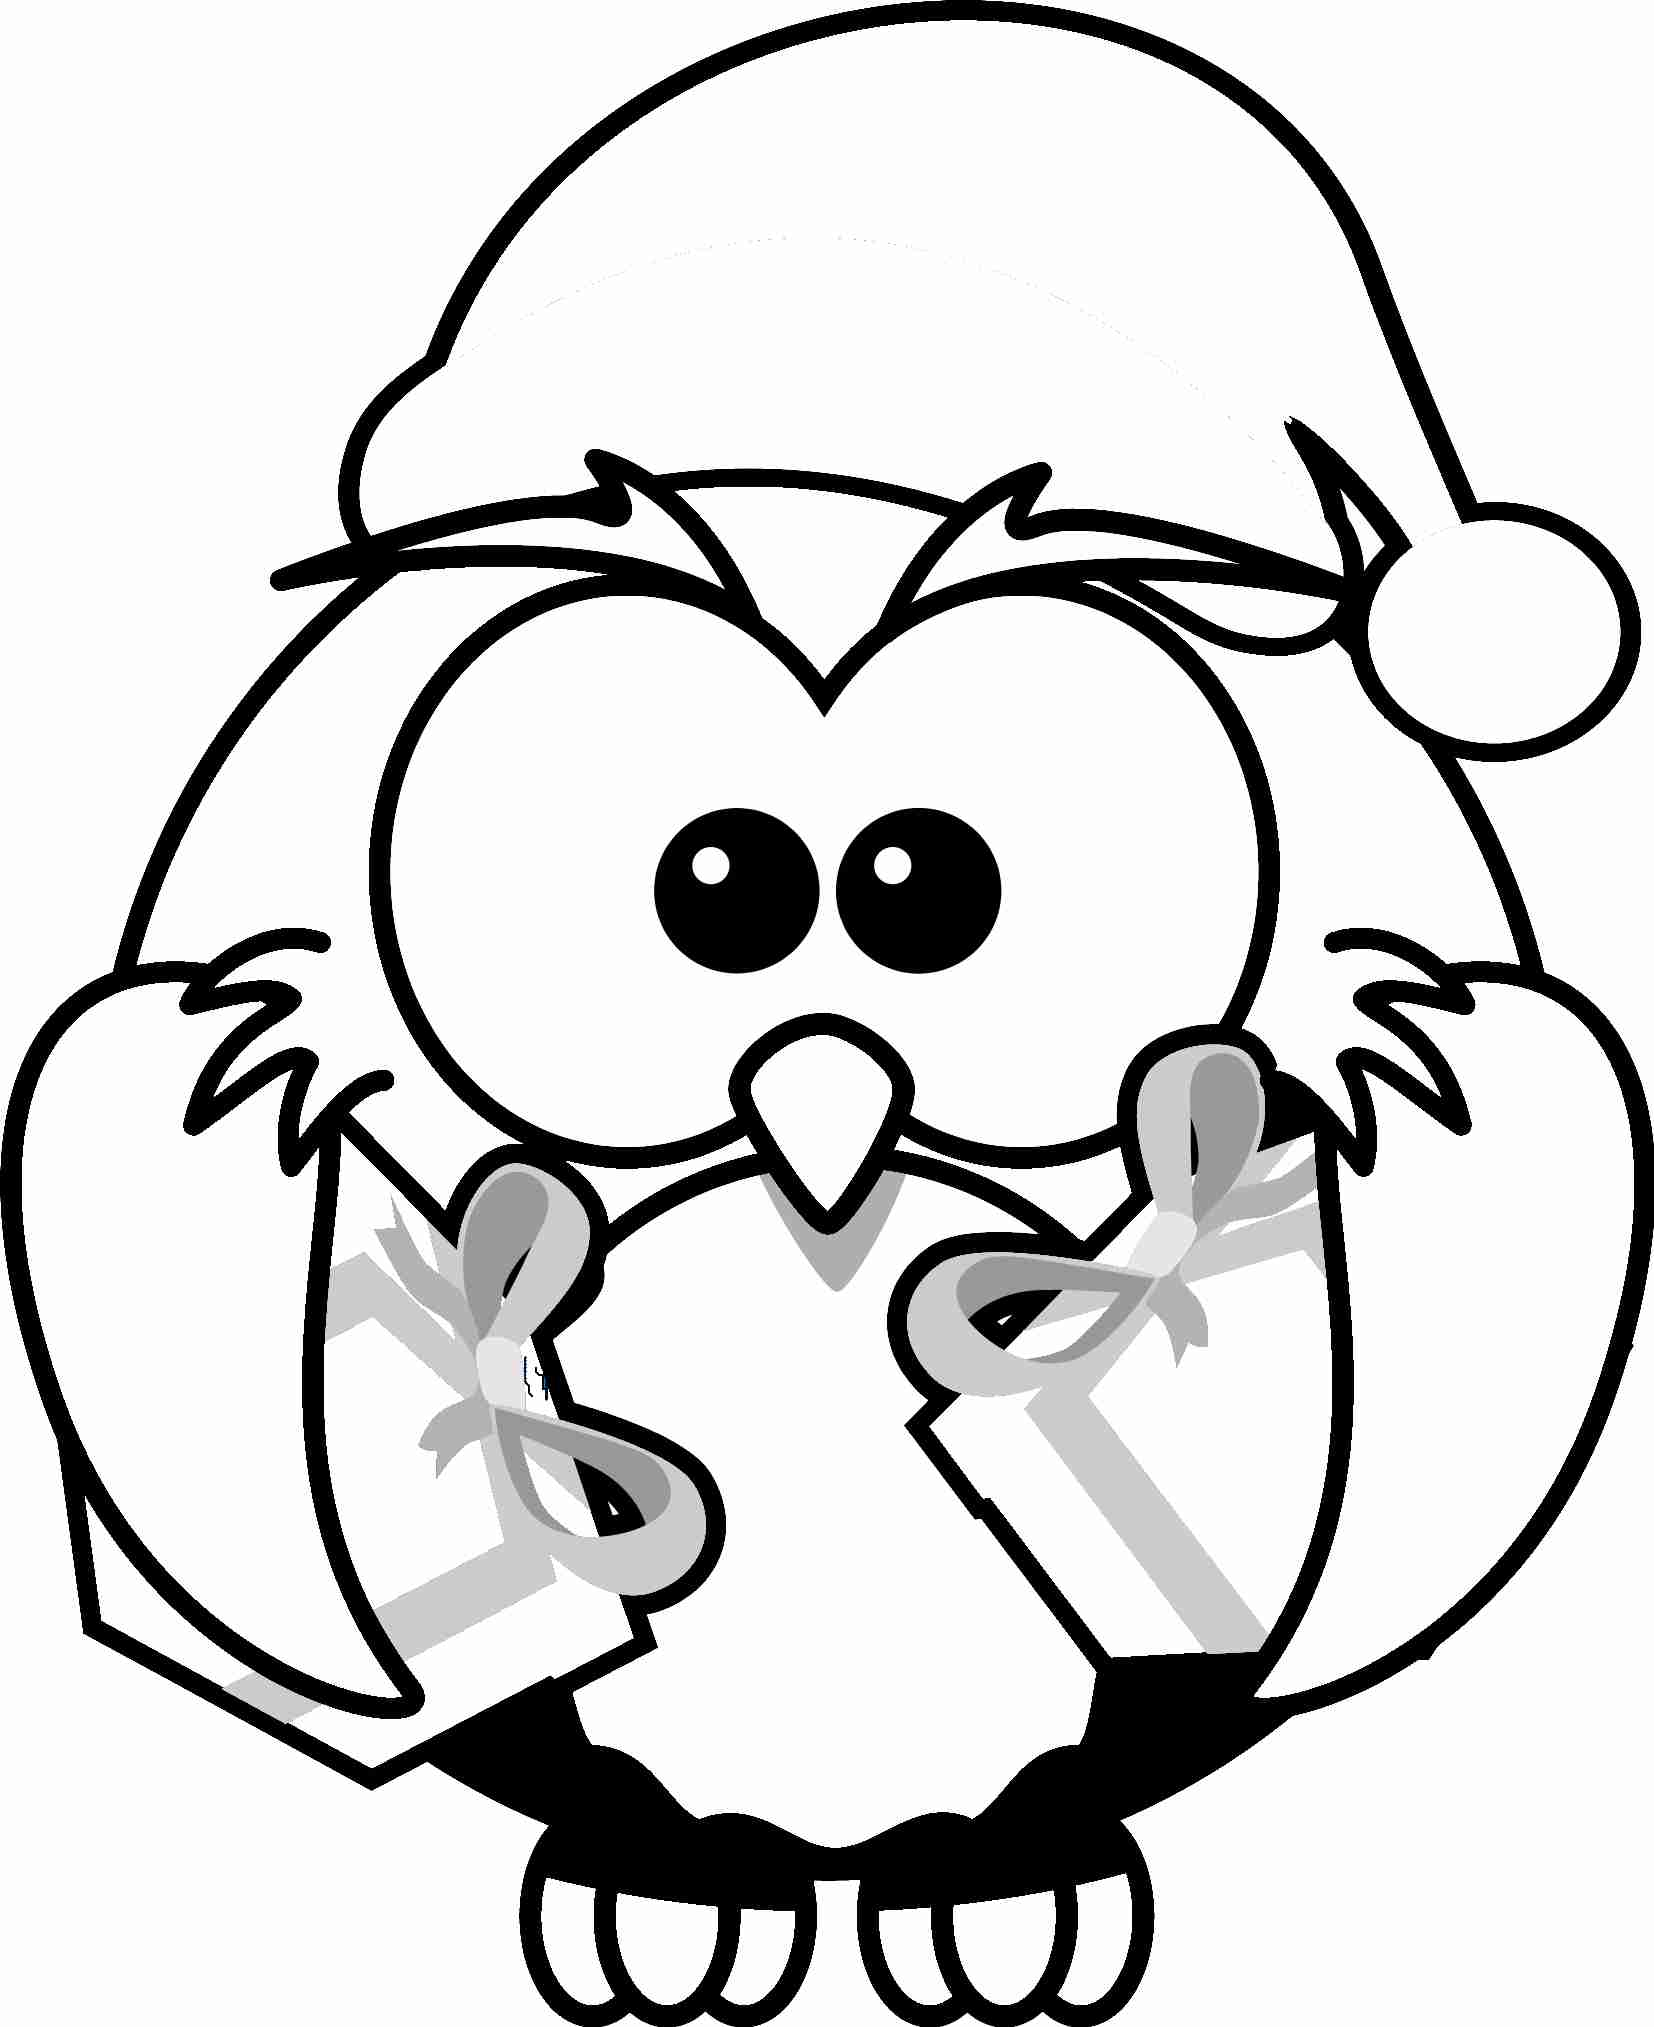 1654x2027 Christmas Coloring Pages